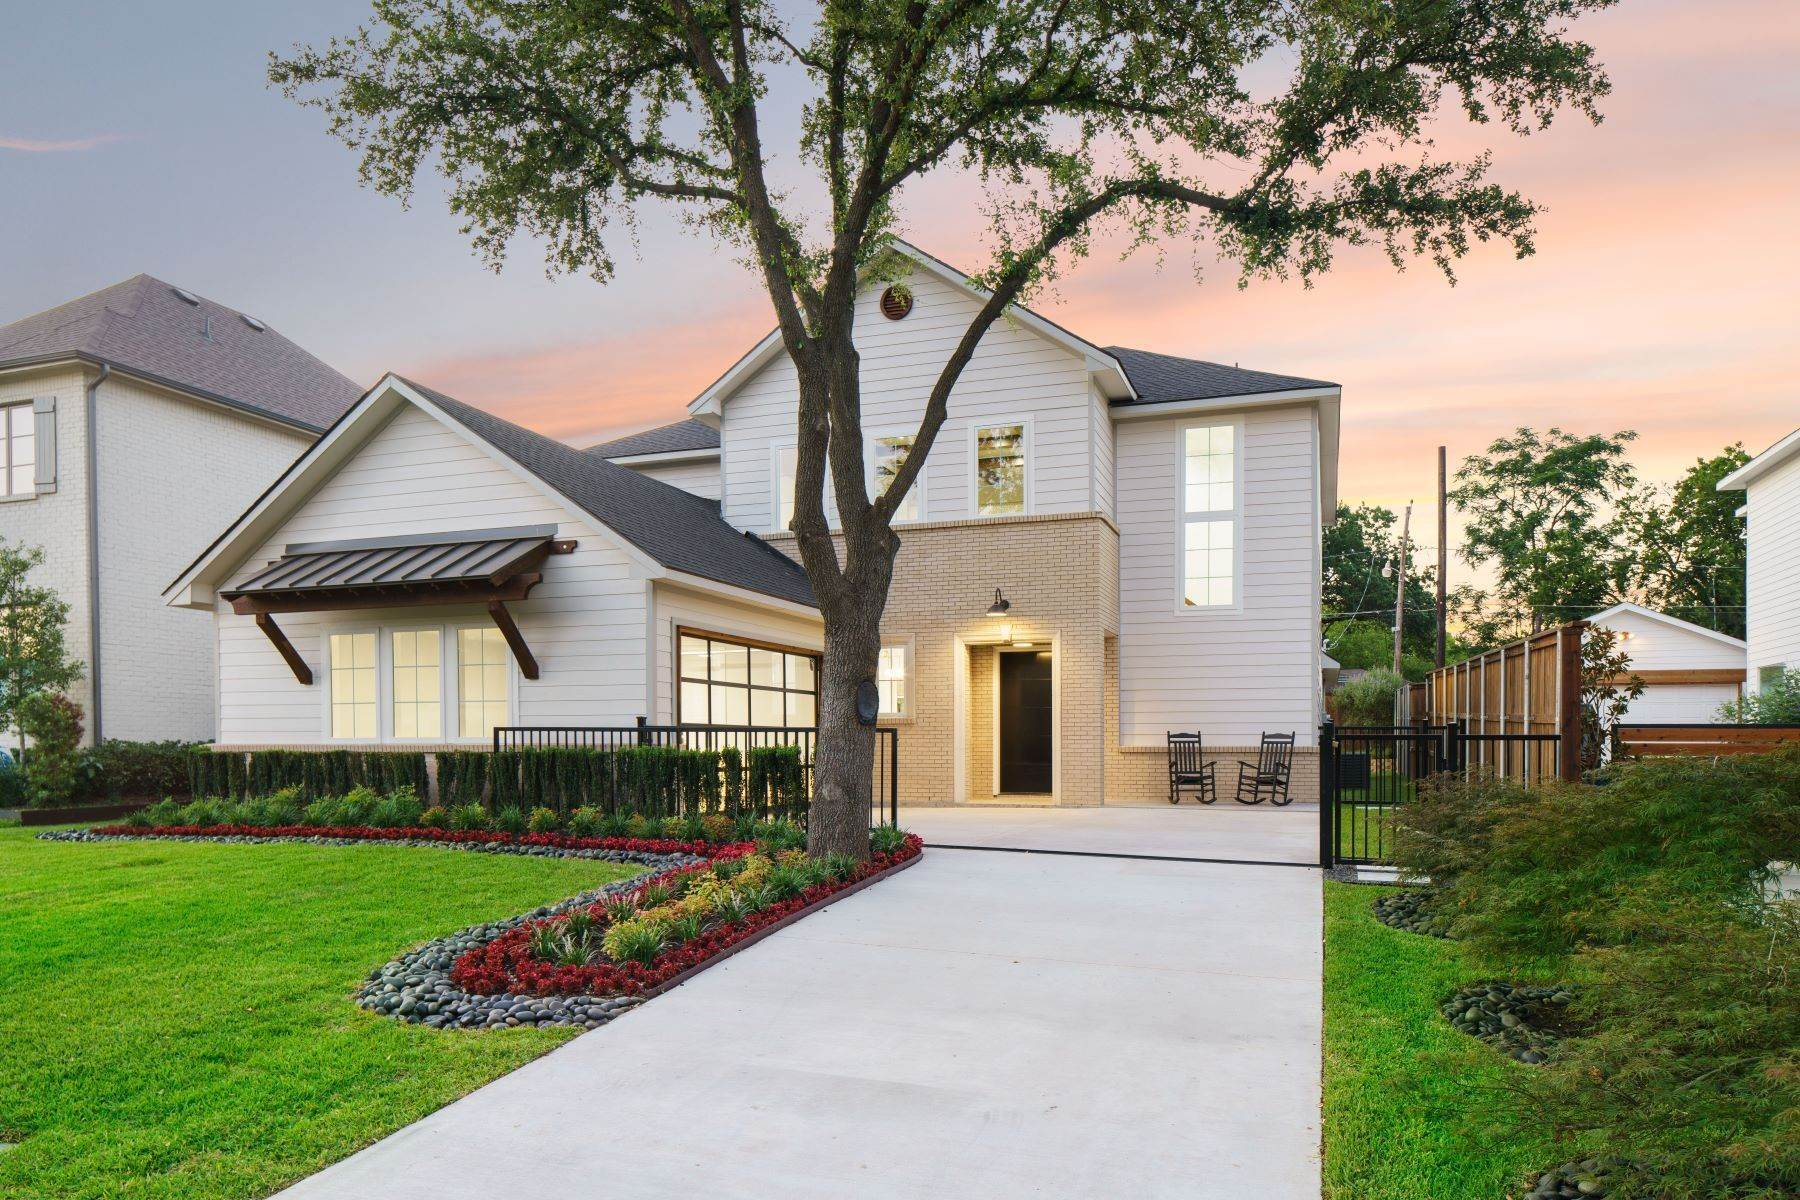 2. Single Family Homes for Sale at Midway Hollow Modern Transitional 3935 Lively Lane Dallas, Texas 75220 United States